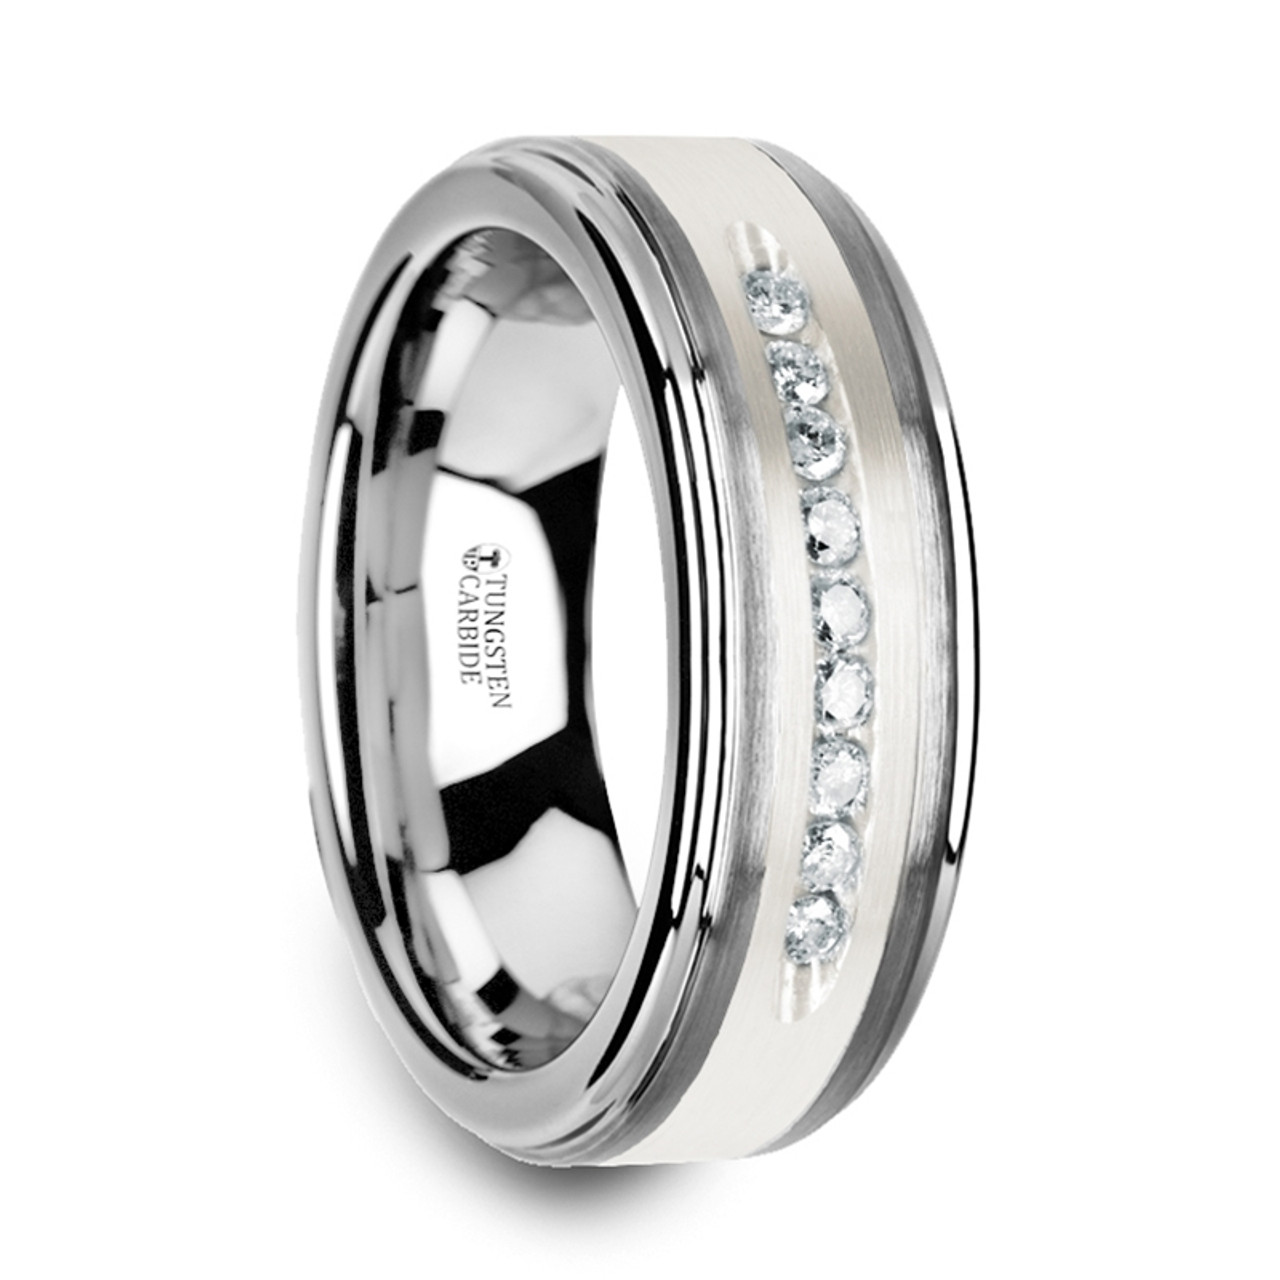 Mens Wedding Bands Tungsten.27 Cwt White Diamond Mens Wedding Bands Tungsten Z218c